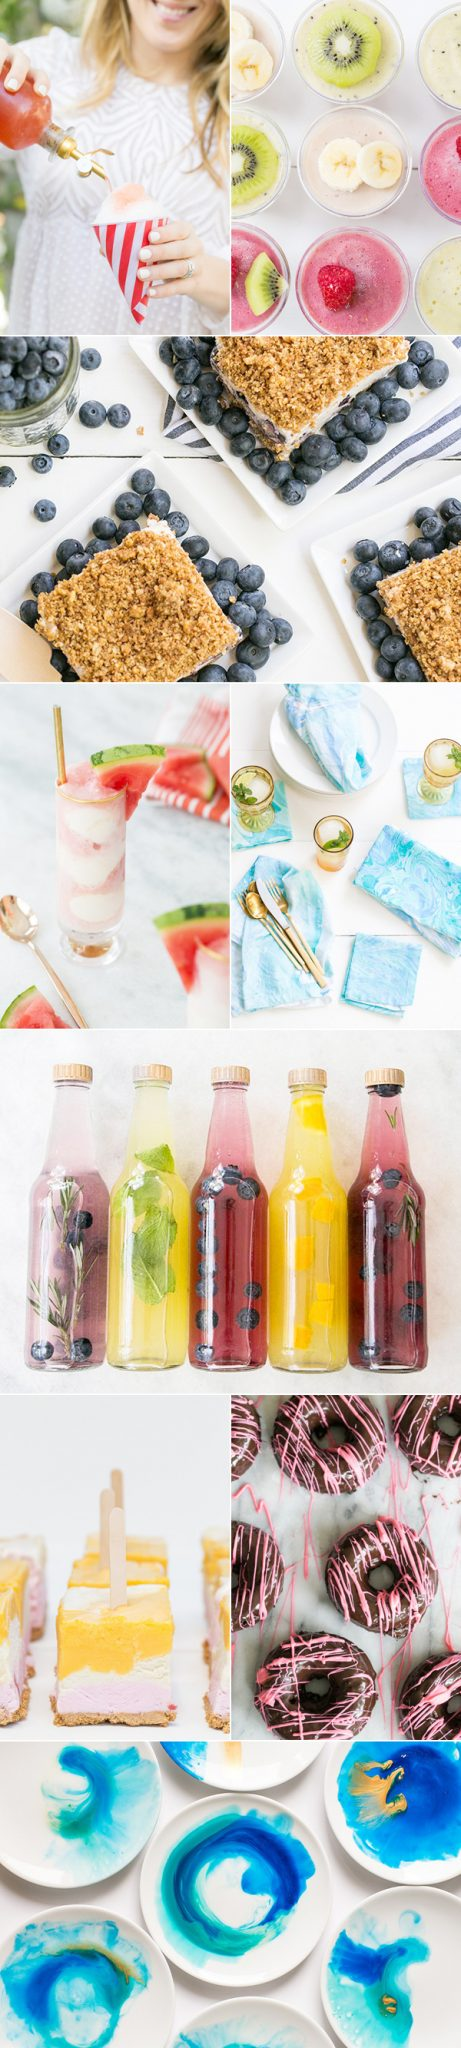 Sugar & Charm | A blog loaded with entertaining ideas, recipes, party ideas, cocktail recipes, and more!